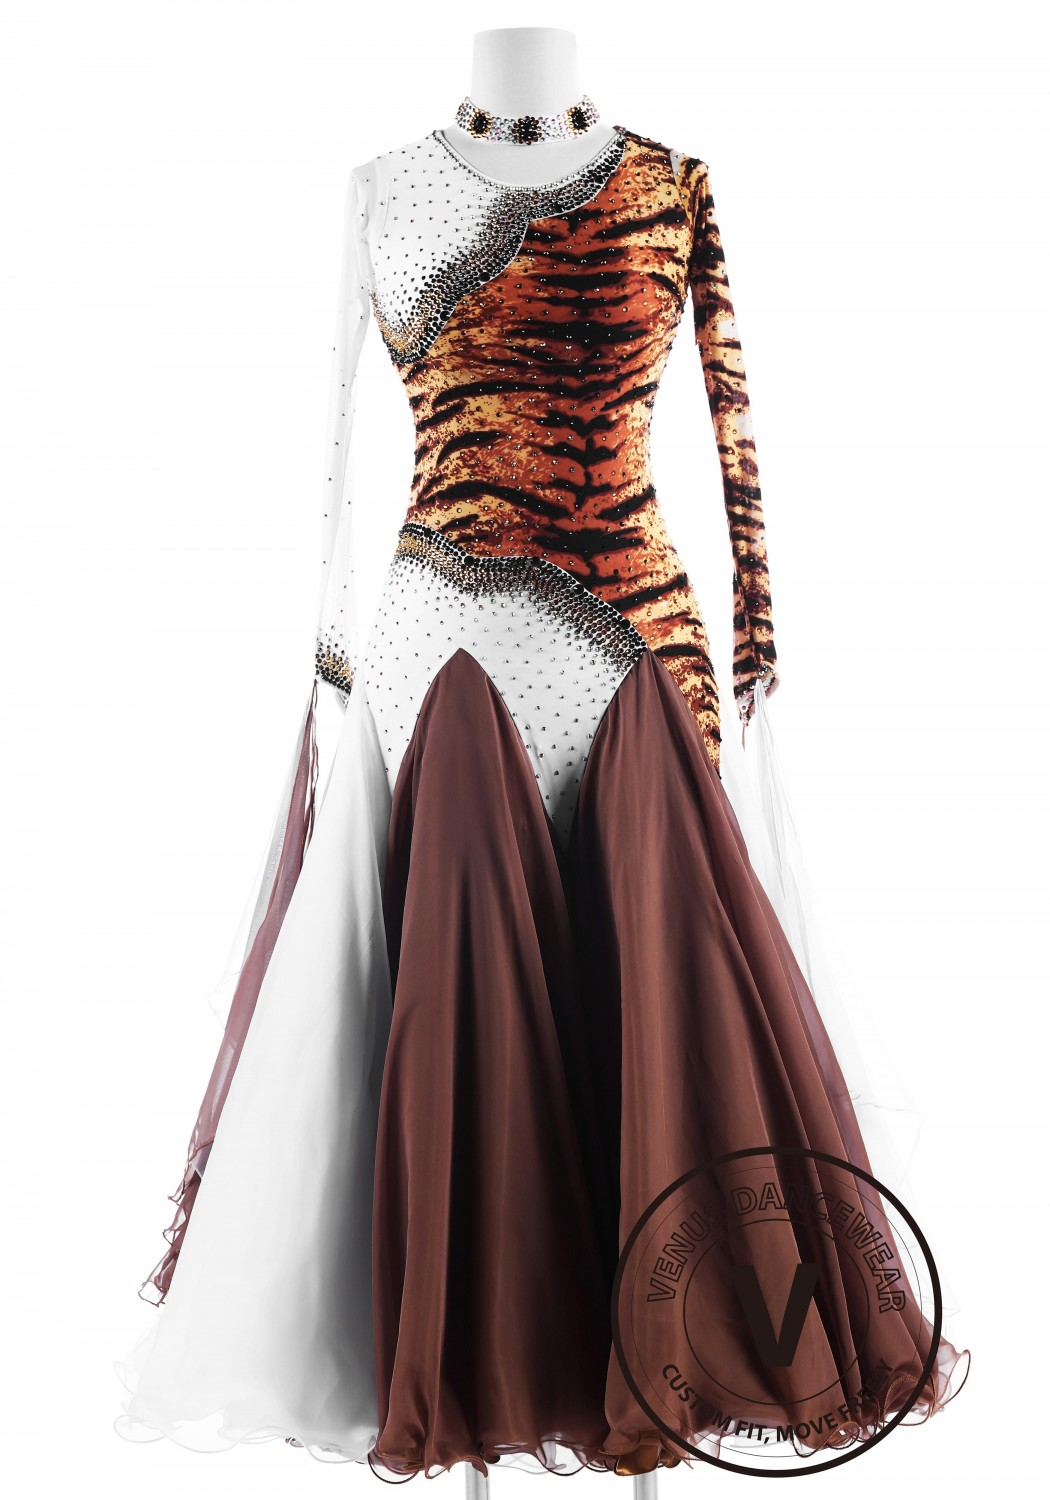 Tiger Stripes Ballroom International Competition Dance Dress